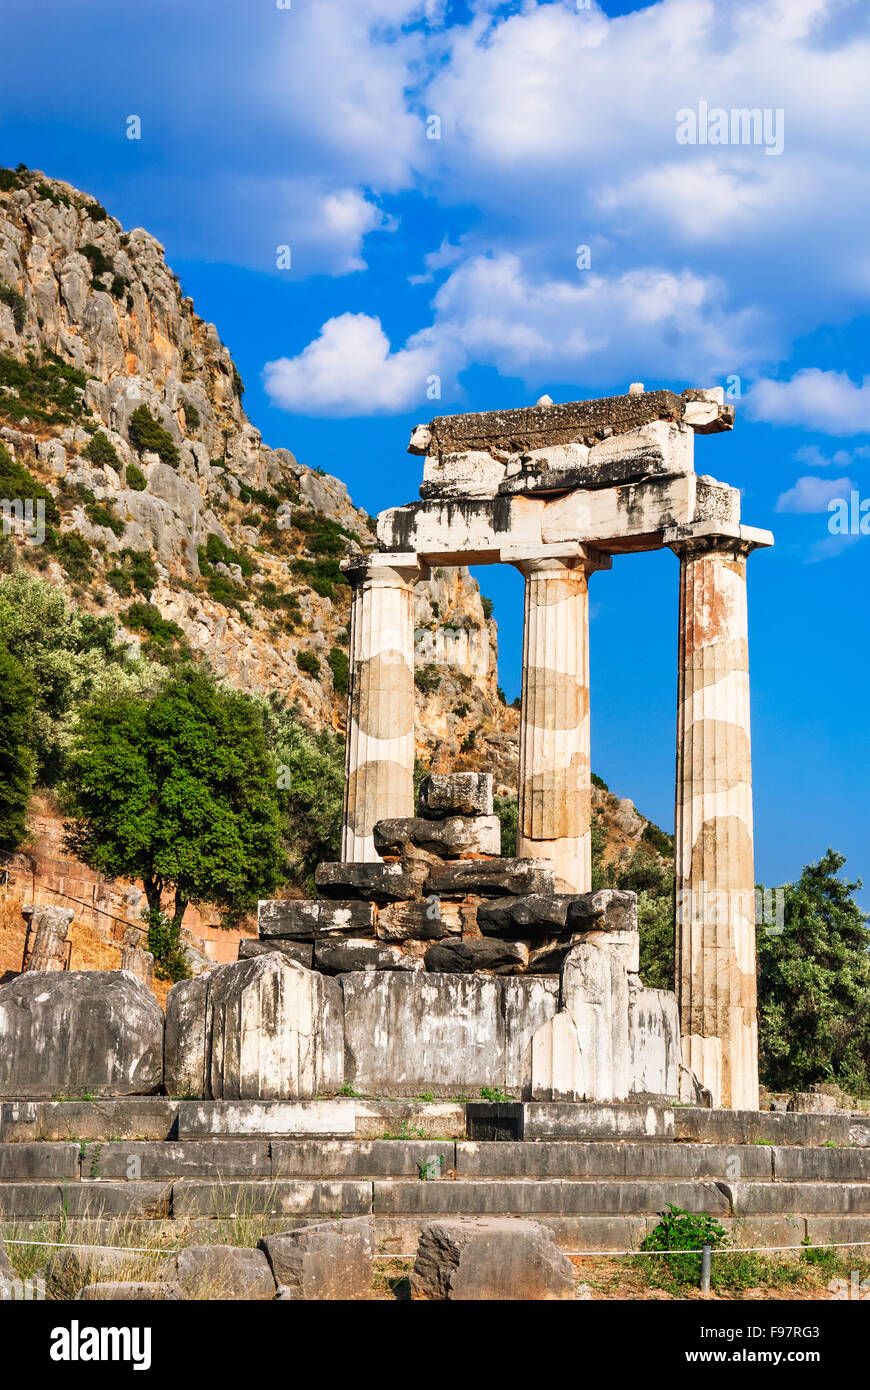 Ancient temple dedicated to Athena near Mount Parnassus, Delphi, Greece Stock Photo